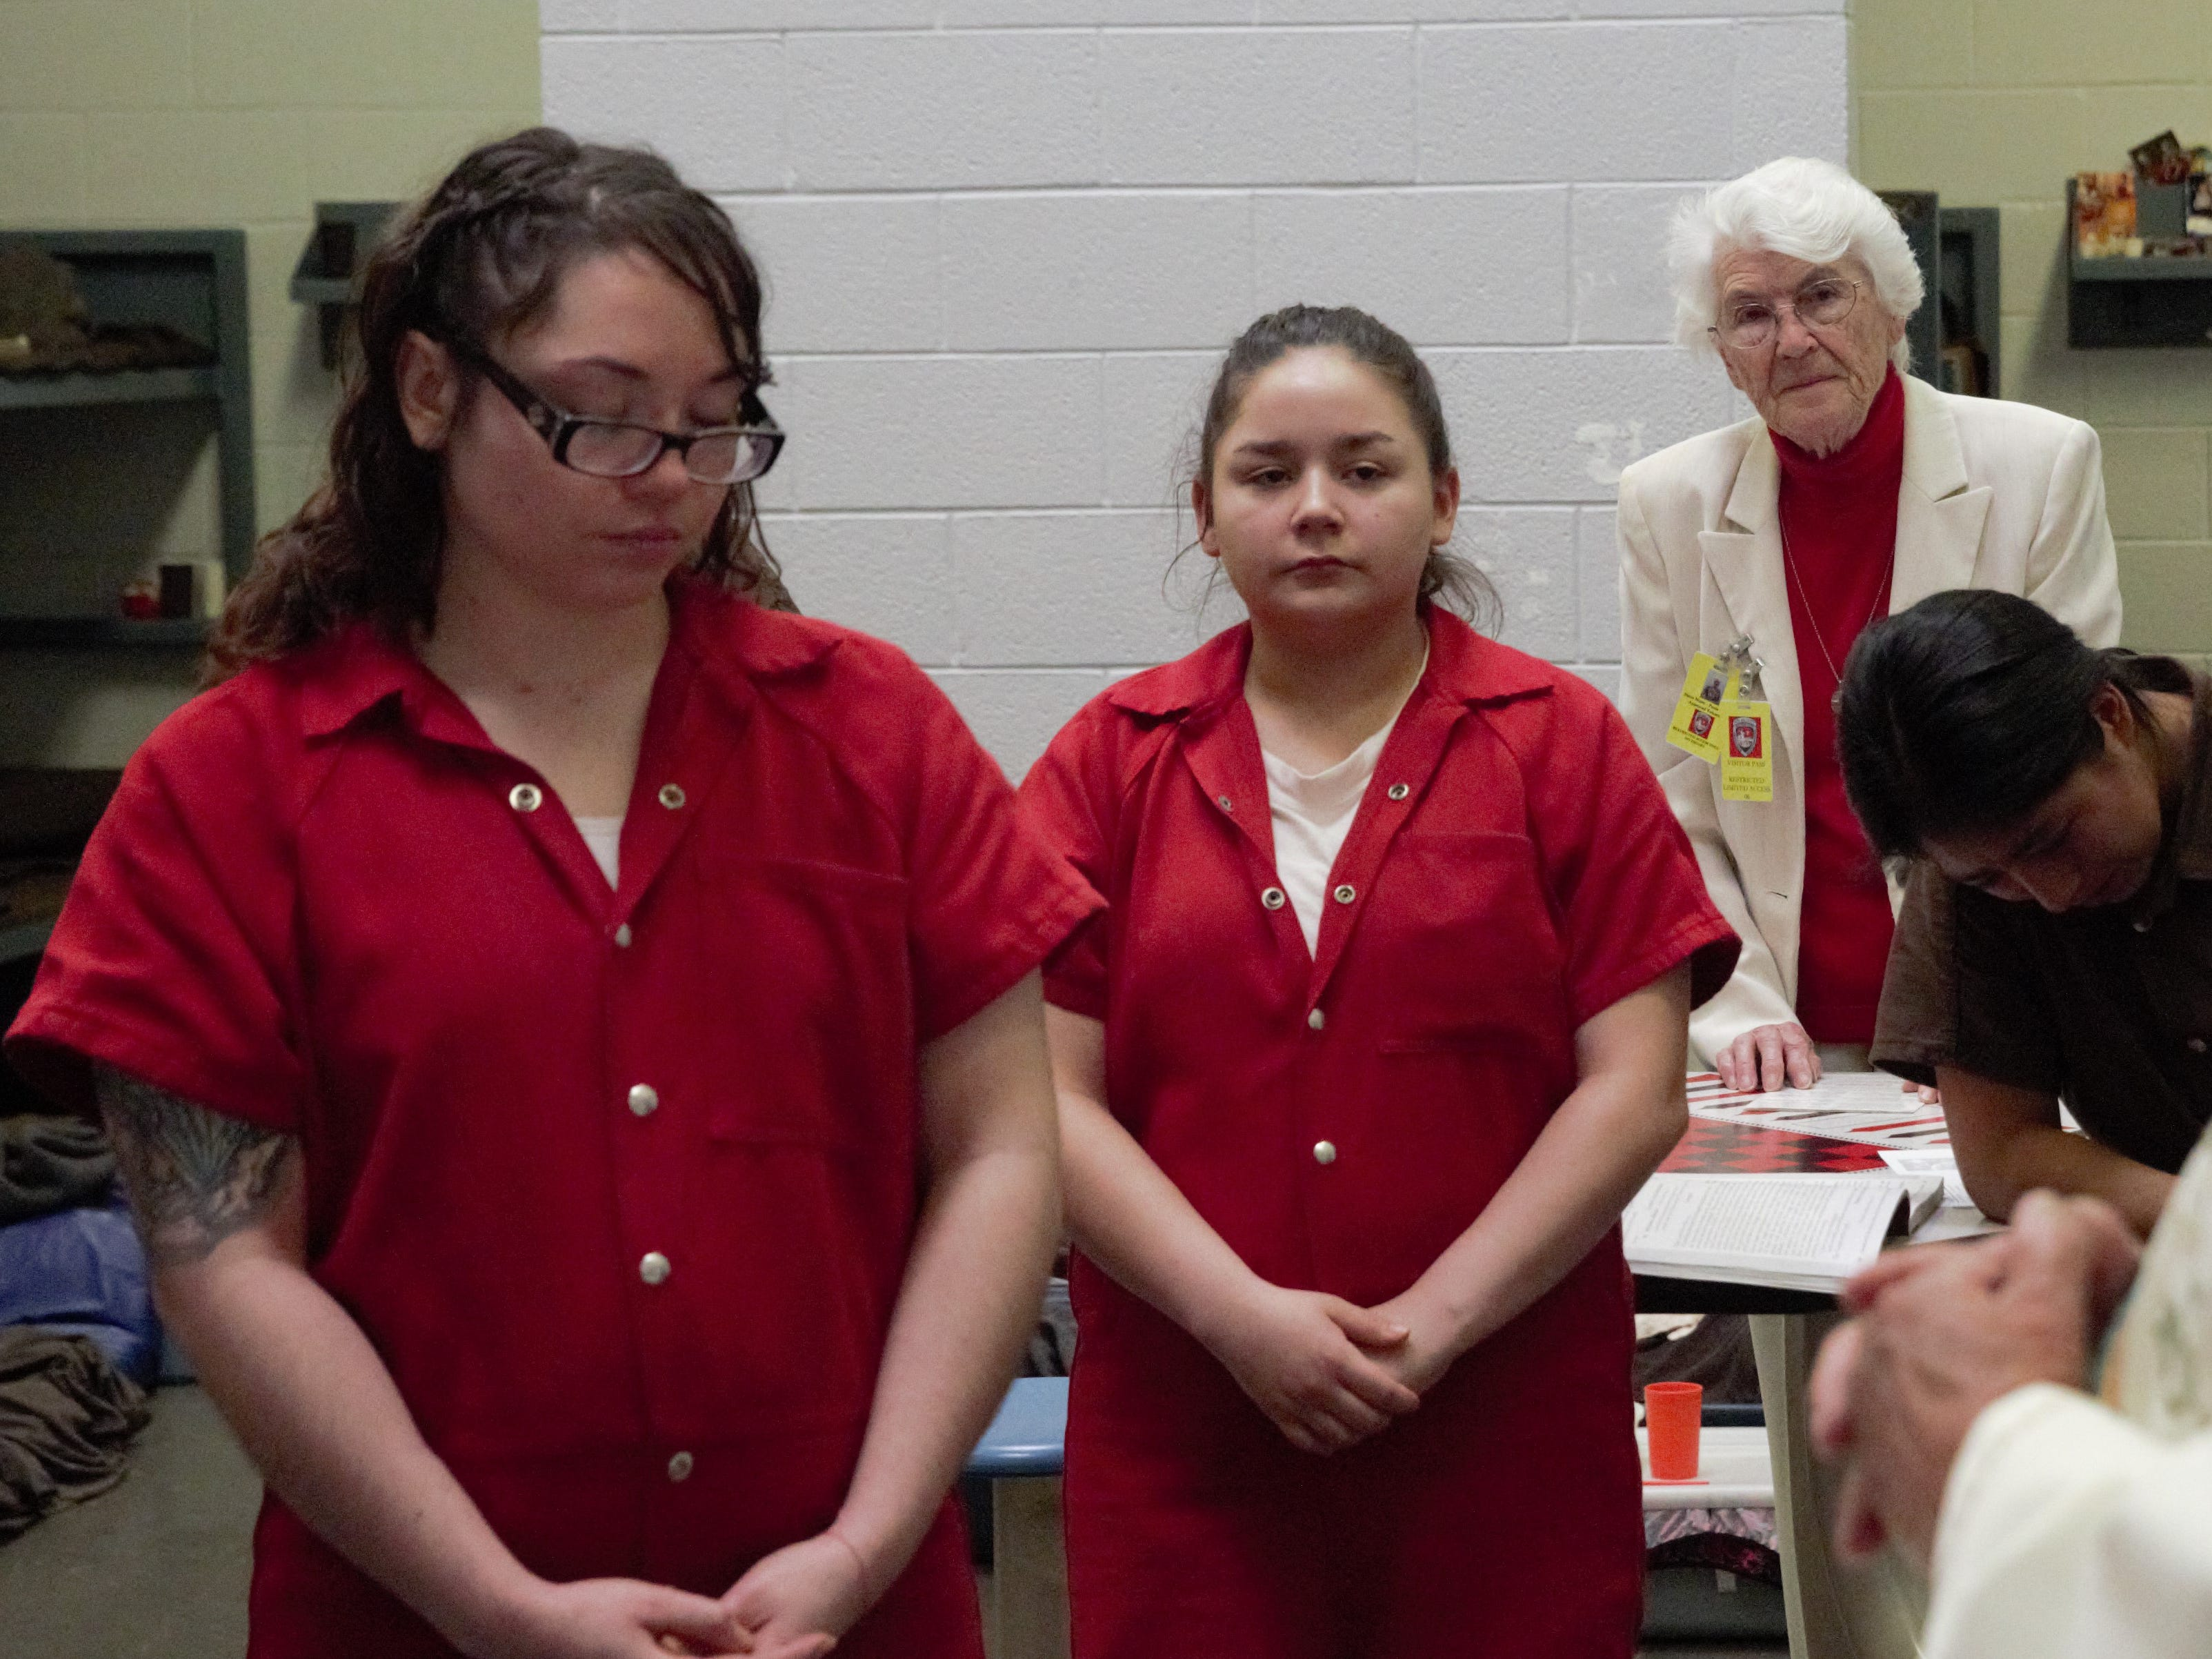 Sister Marie-Paule Willem, back, helps conduct a Catholic Mass for women inside a unit of the Doña Ana County Detention Center on Tuesday, Dec. 25, 2018.